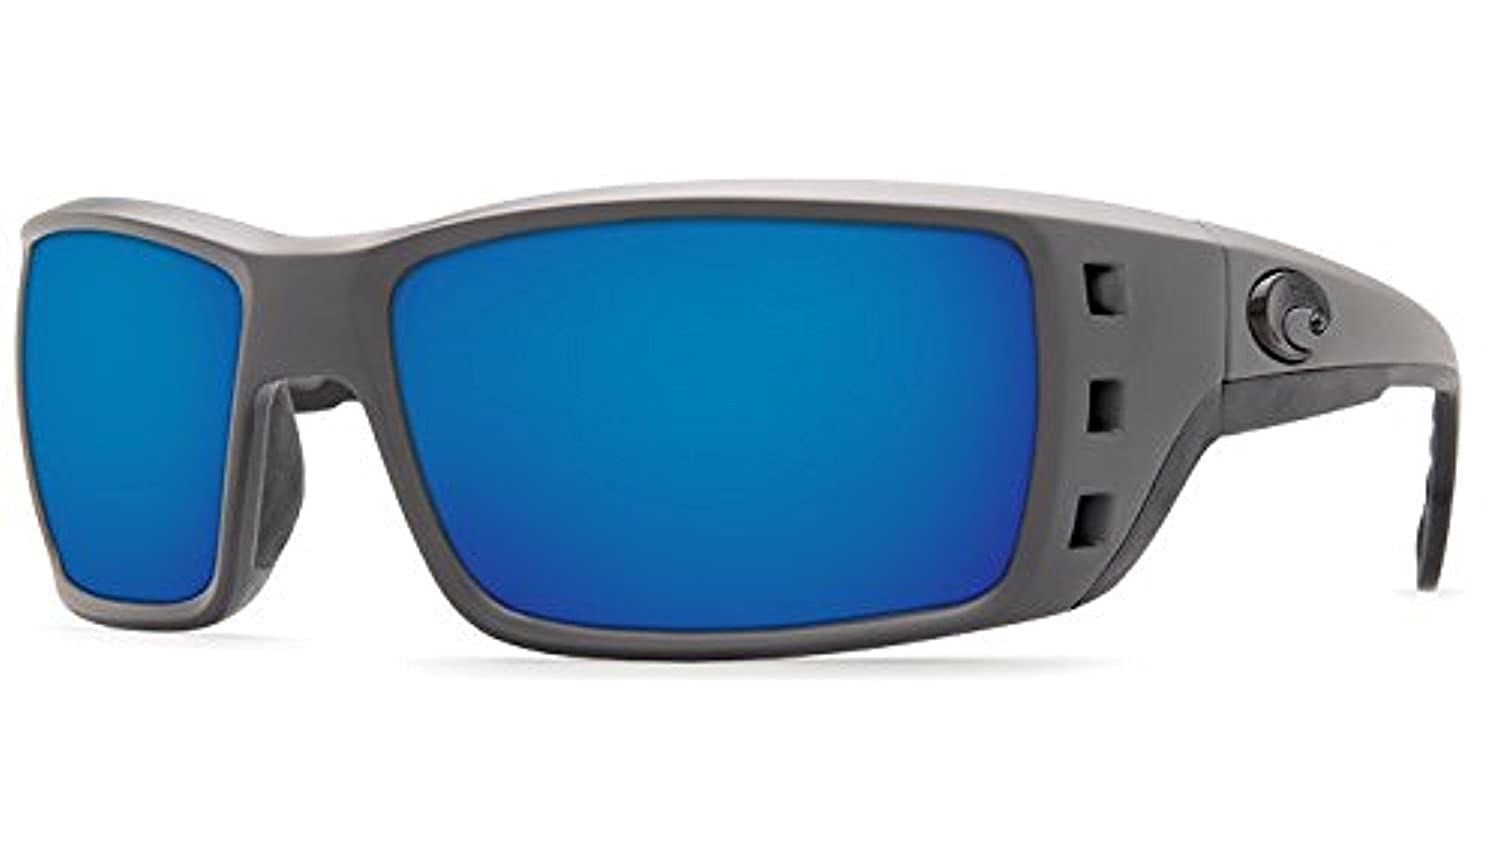 6908c98c7d Amazon.com  Costa Permit Sunglasses Matte Gray Blue Mirror 580G   Cleaning  Kit Bundle  Clothing